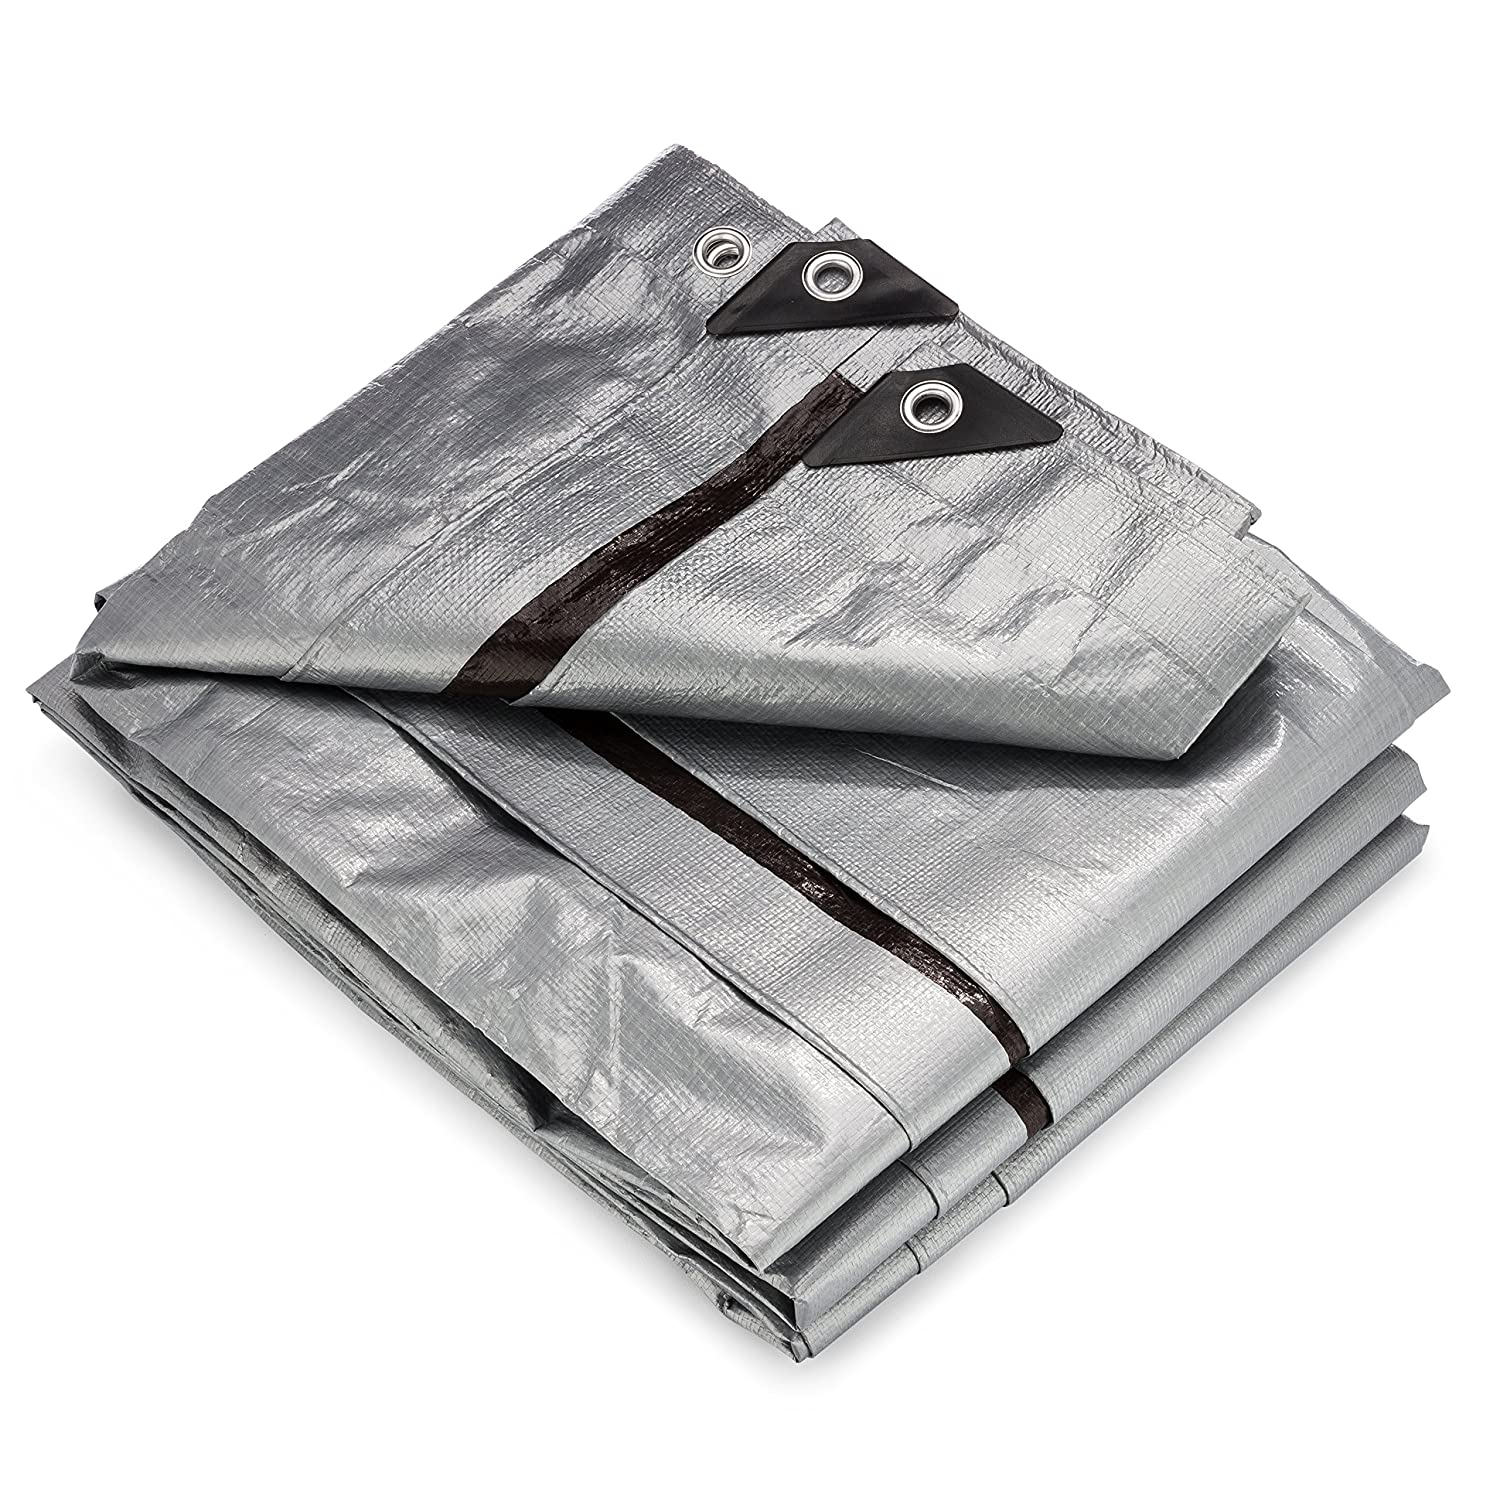 Rain or Sun Outdoor 10 x 12 Foot Patio KING-A-MA-JIGS Reversible, Silver and Brown For Roof Waterproof Plastic Poly 10 Mil Thick Tarpaulin with Metal Grommets Every 18 Inches 10x12 Heavy Duty Tarp Camping